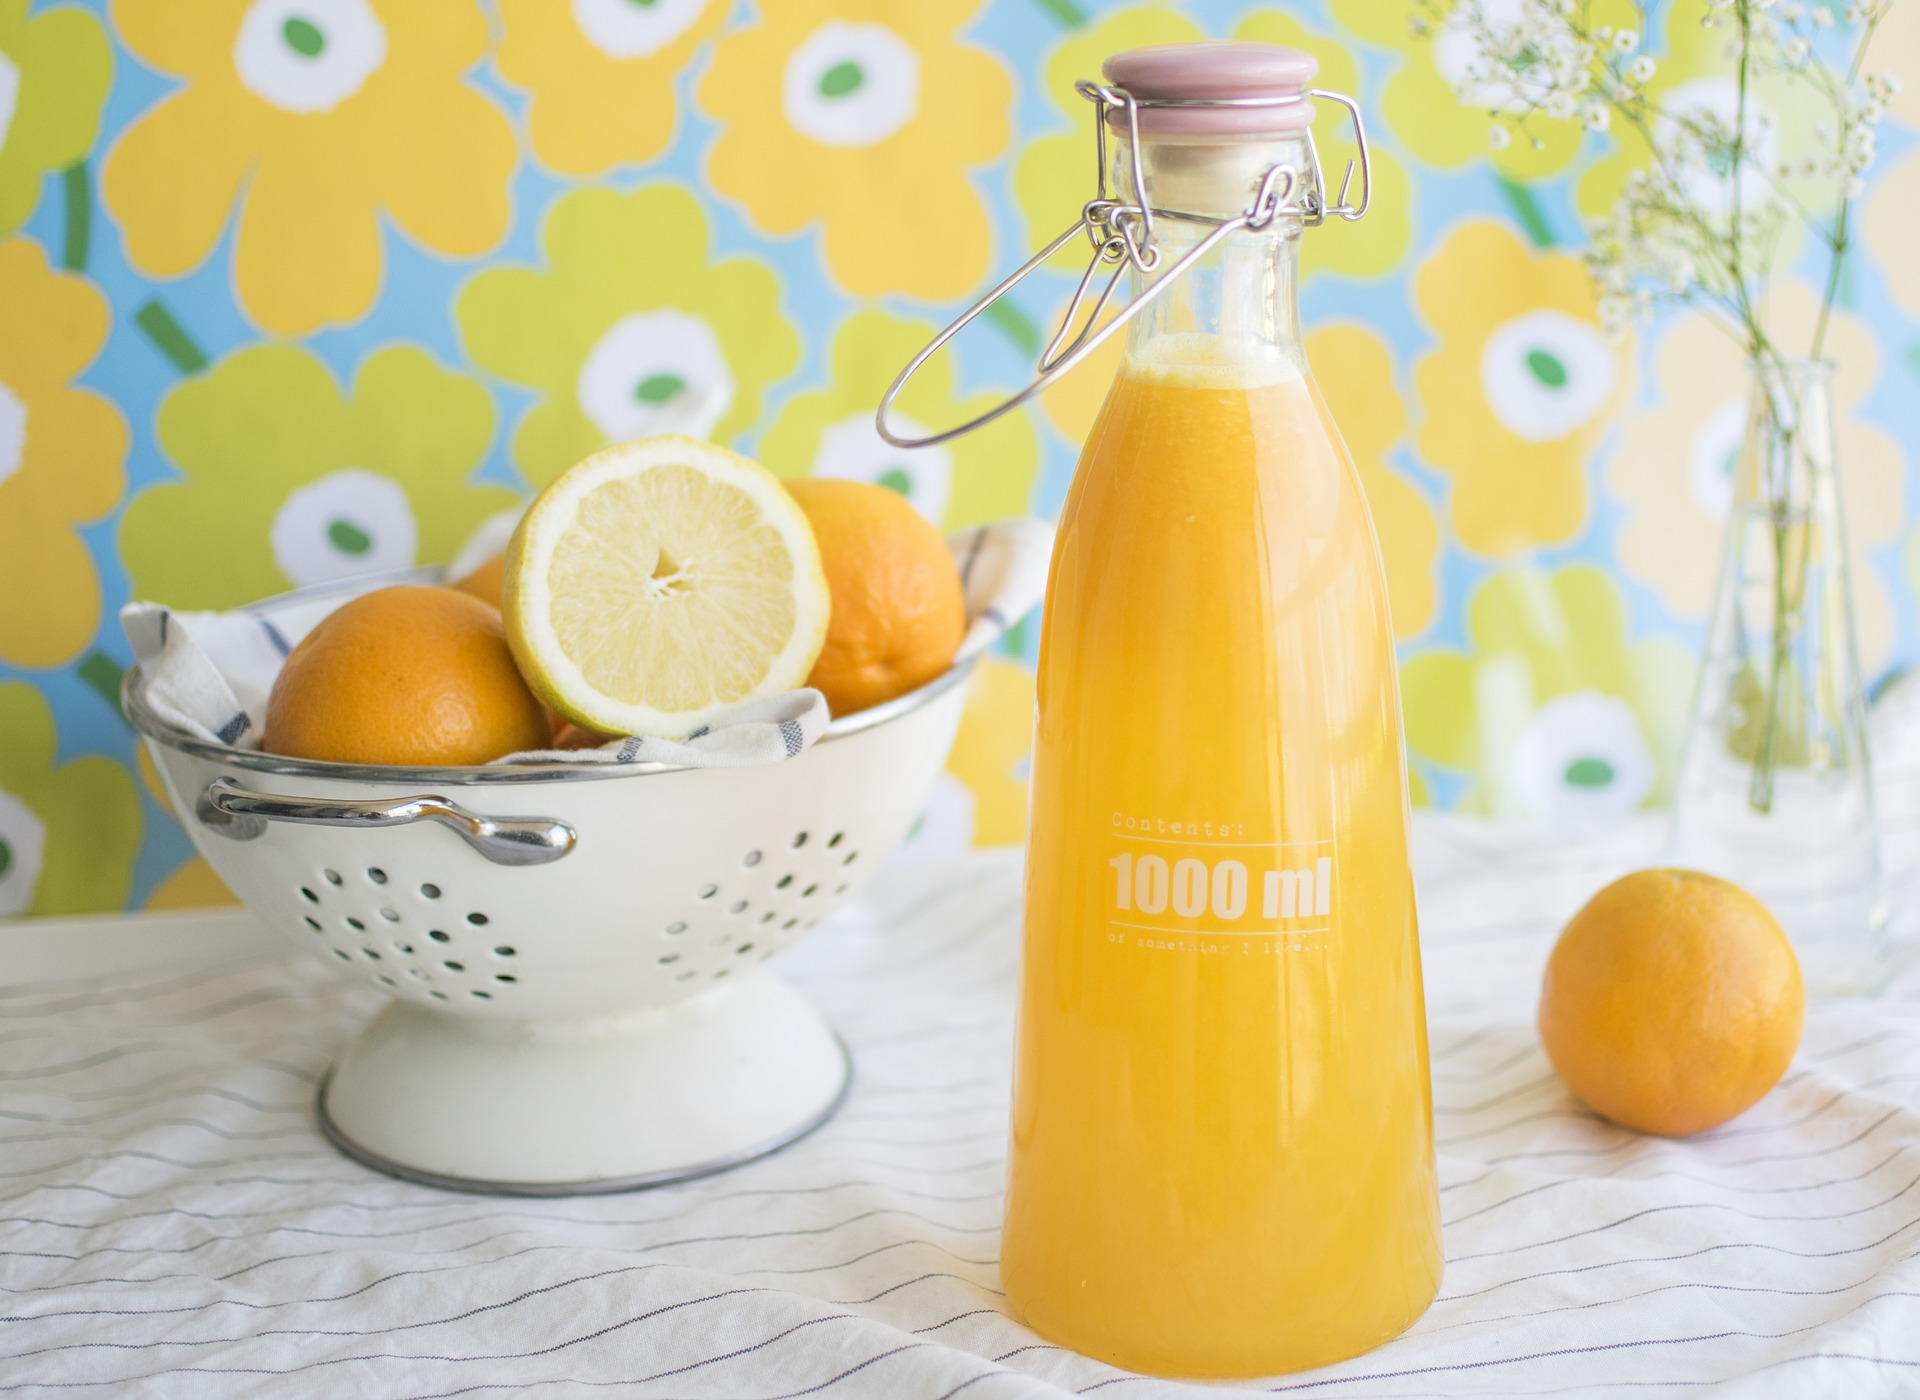 UPCOMING ONLINE EVENT: THE DELICIOUS ORANGE DETOX